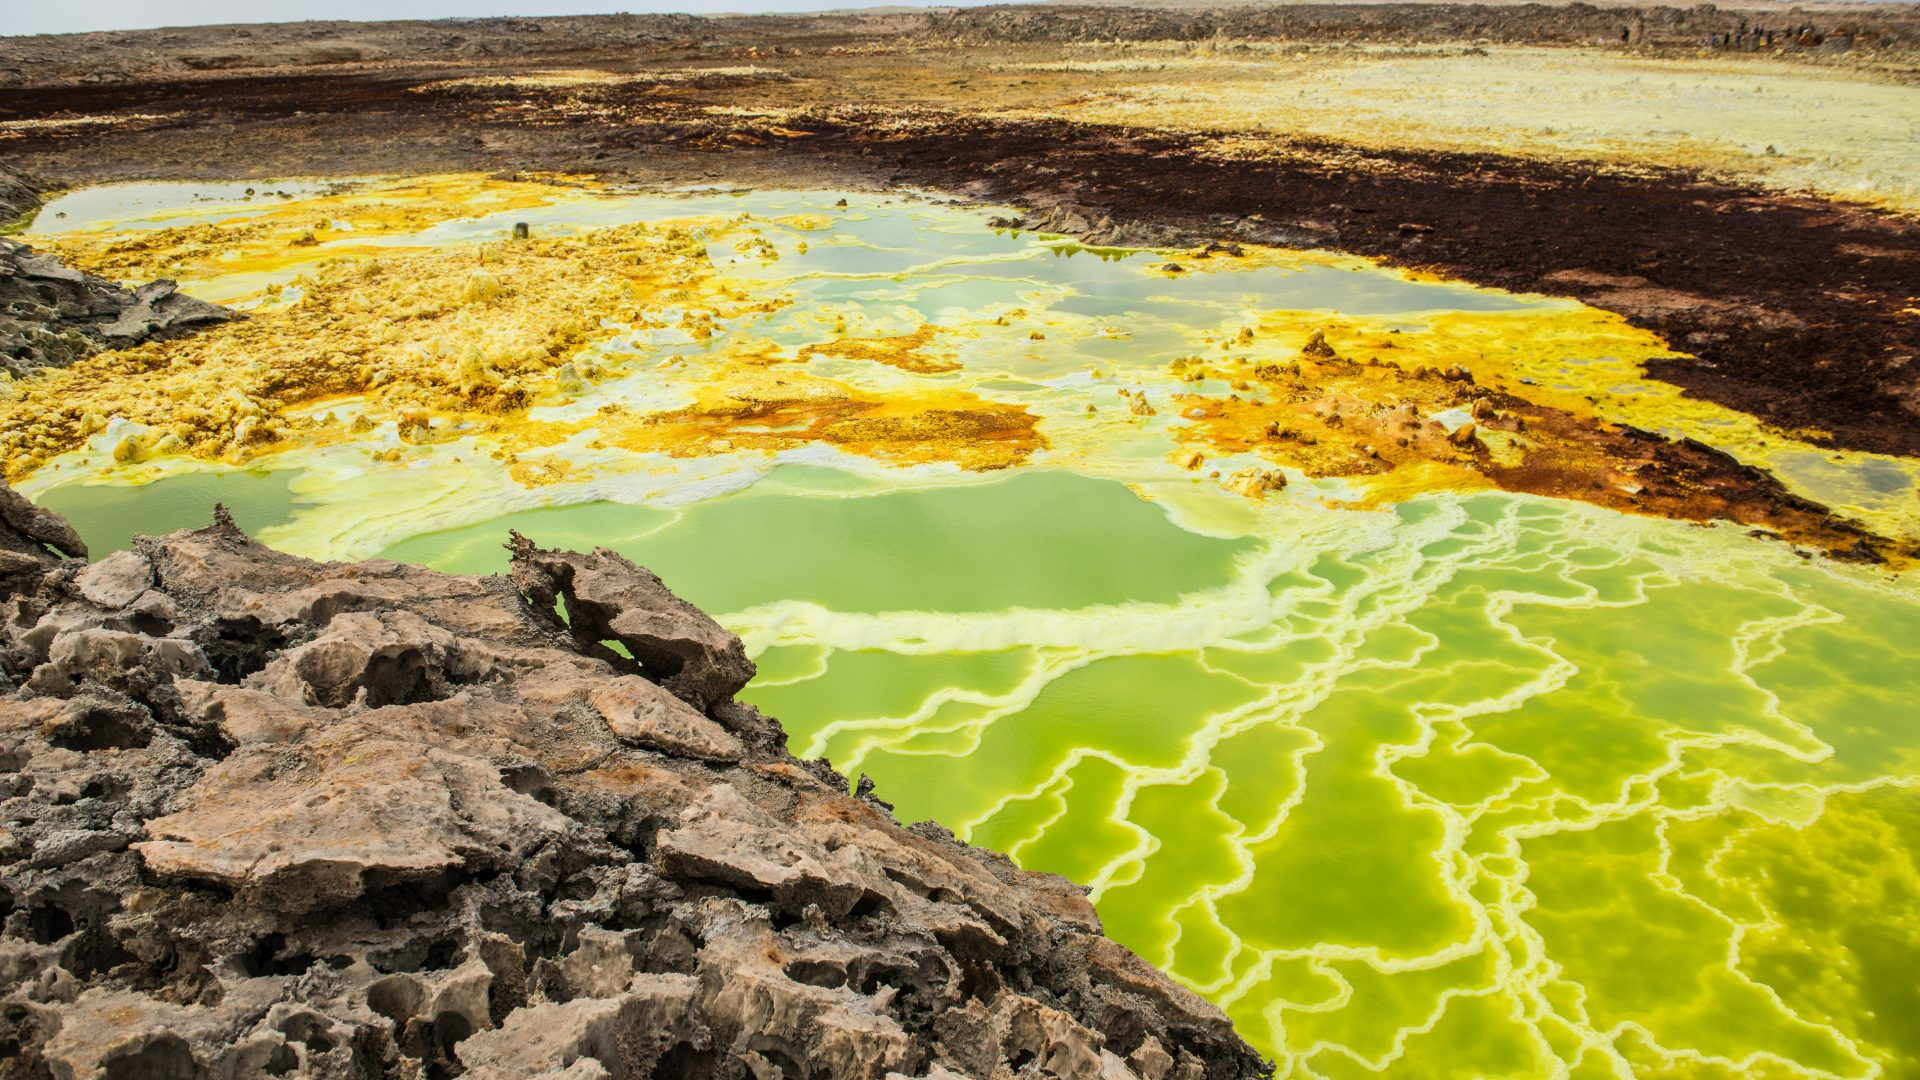 Surreal photos from the hottest place on earth